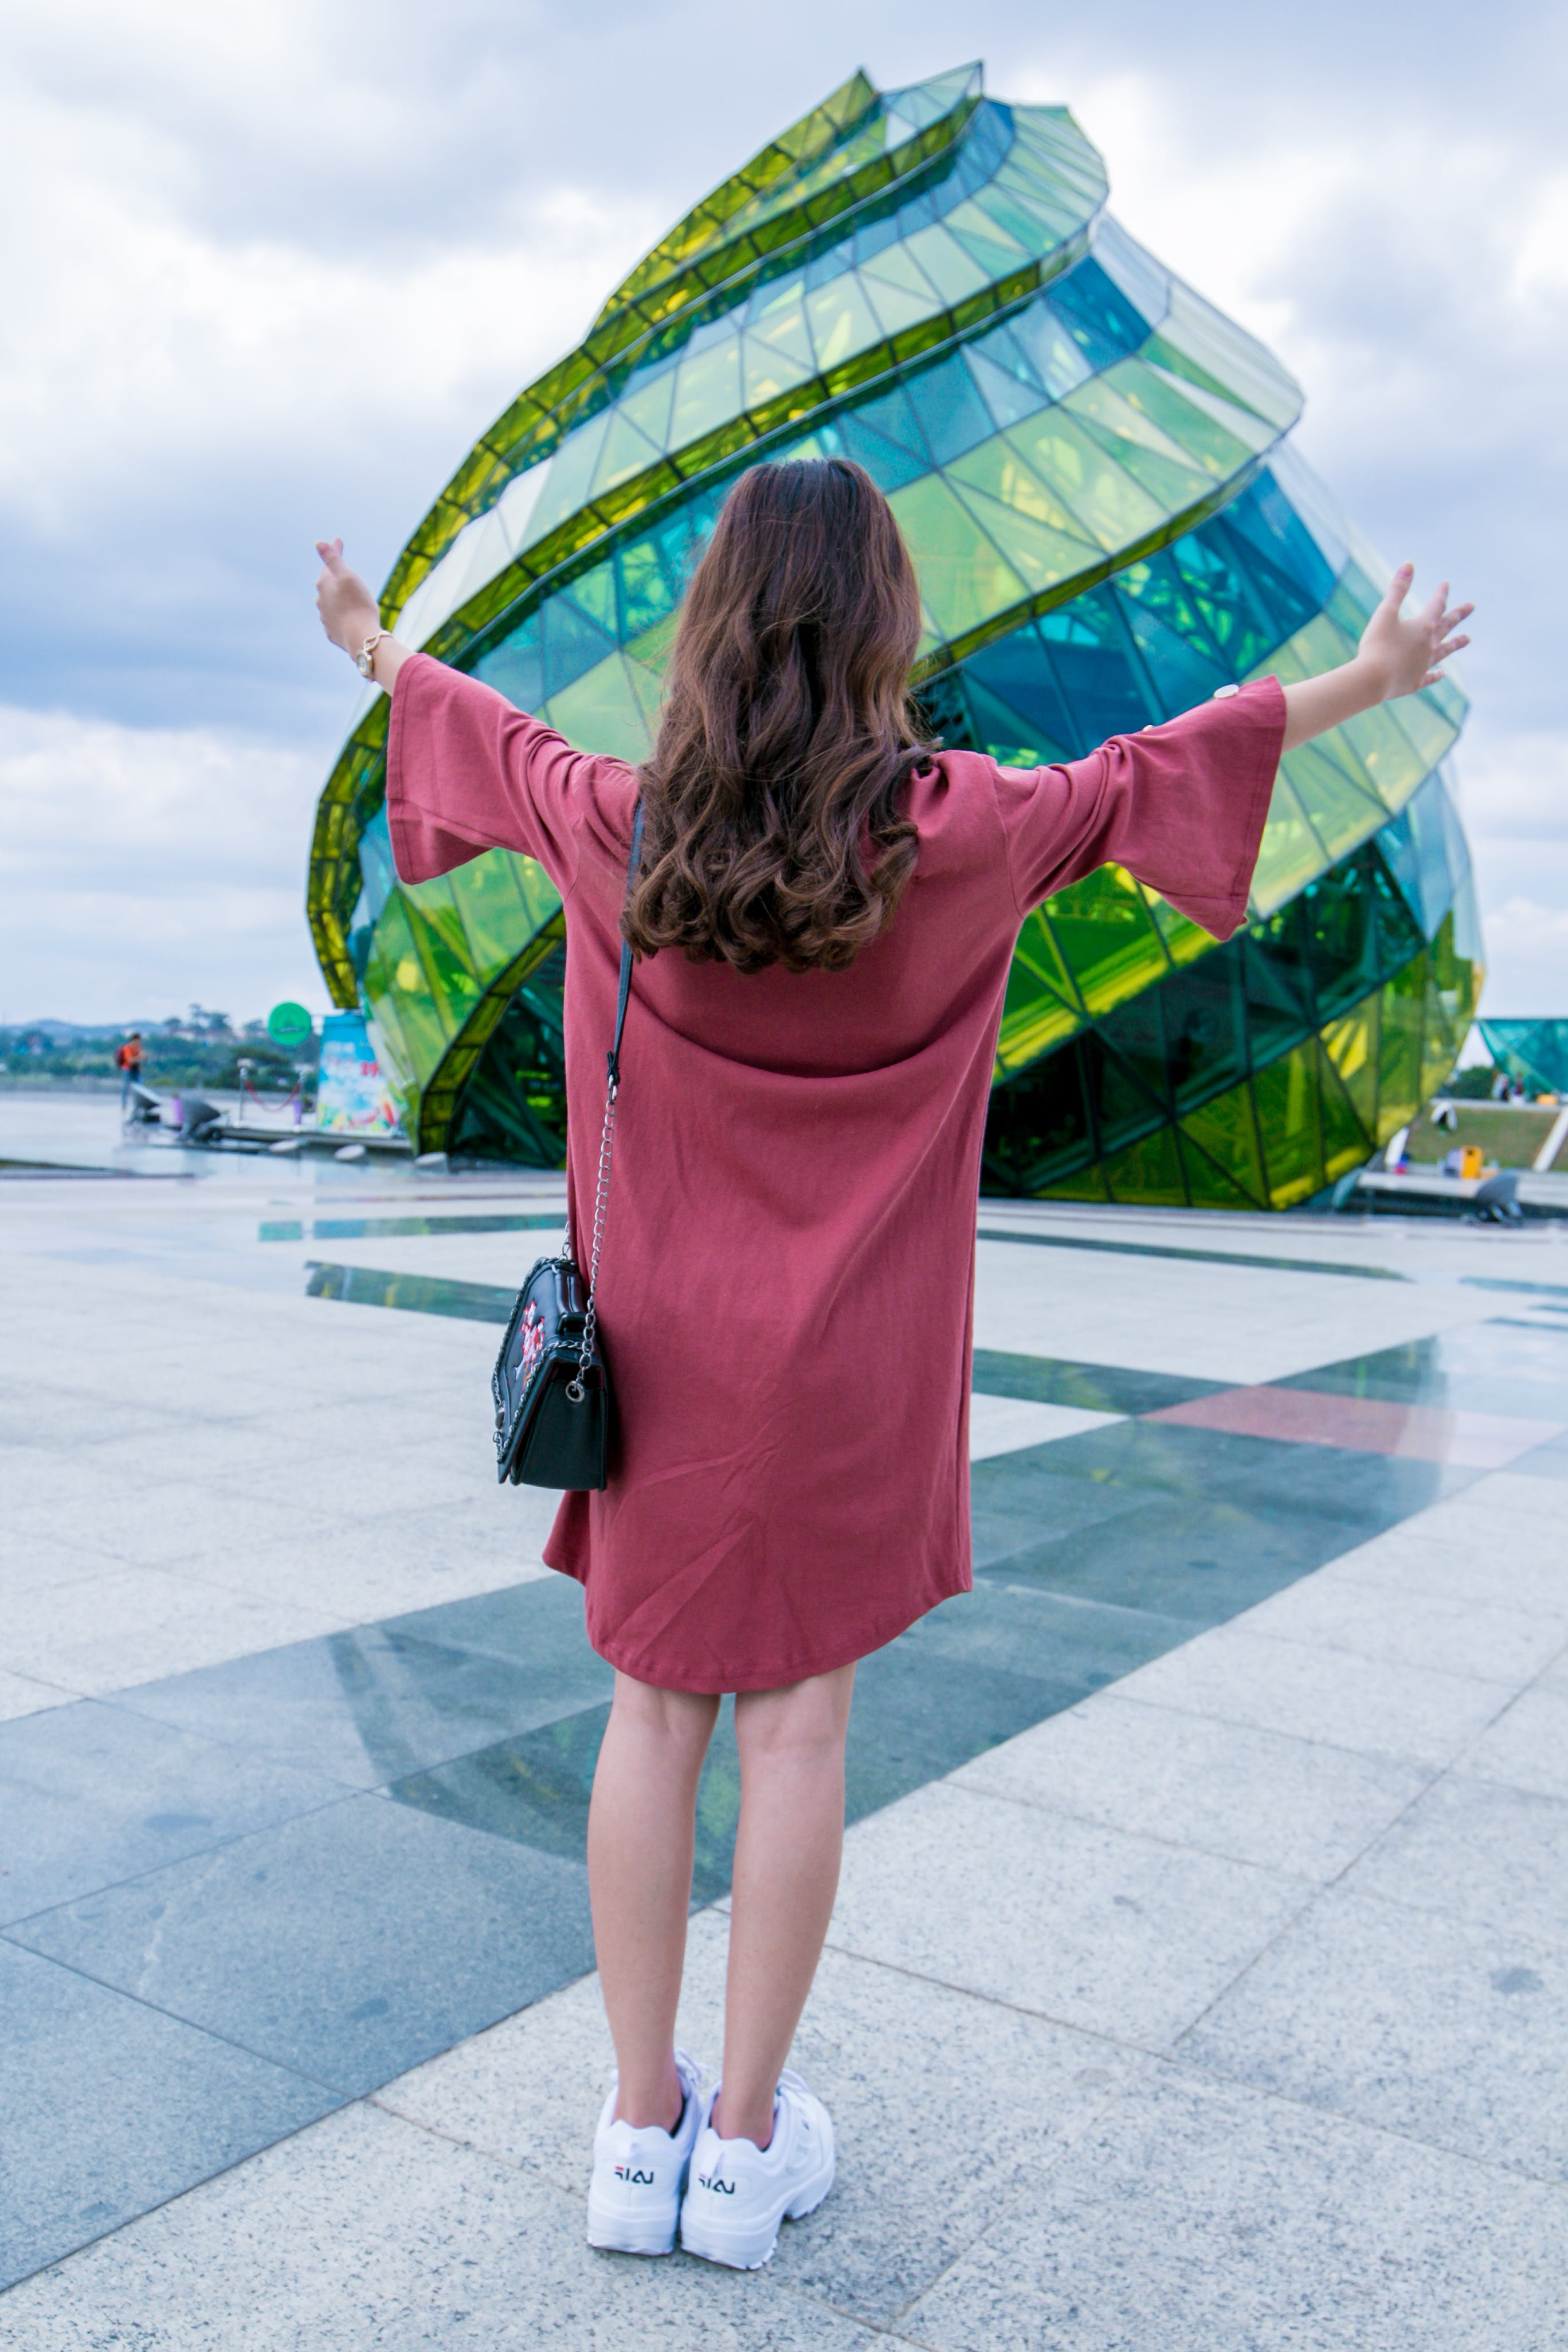 Woman Standing In-front of Glass Building